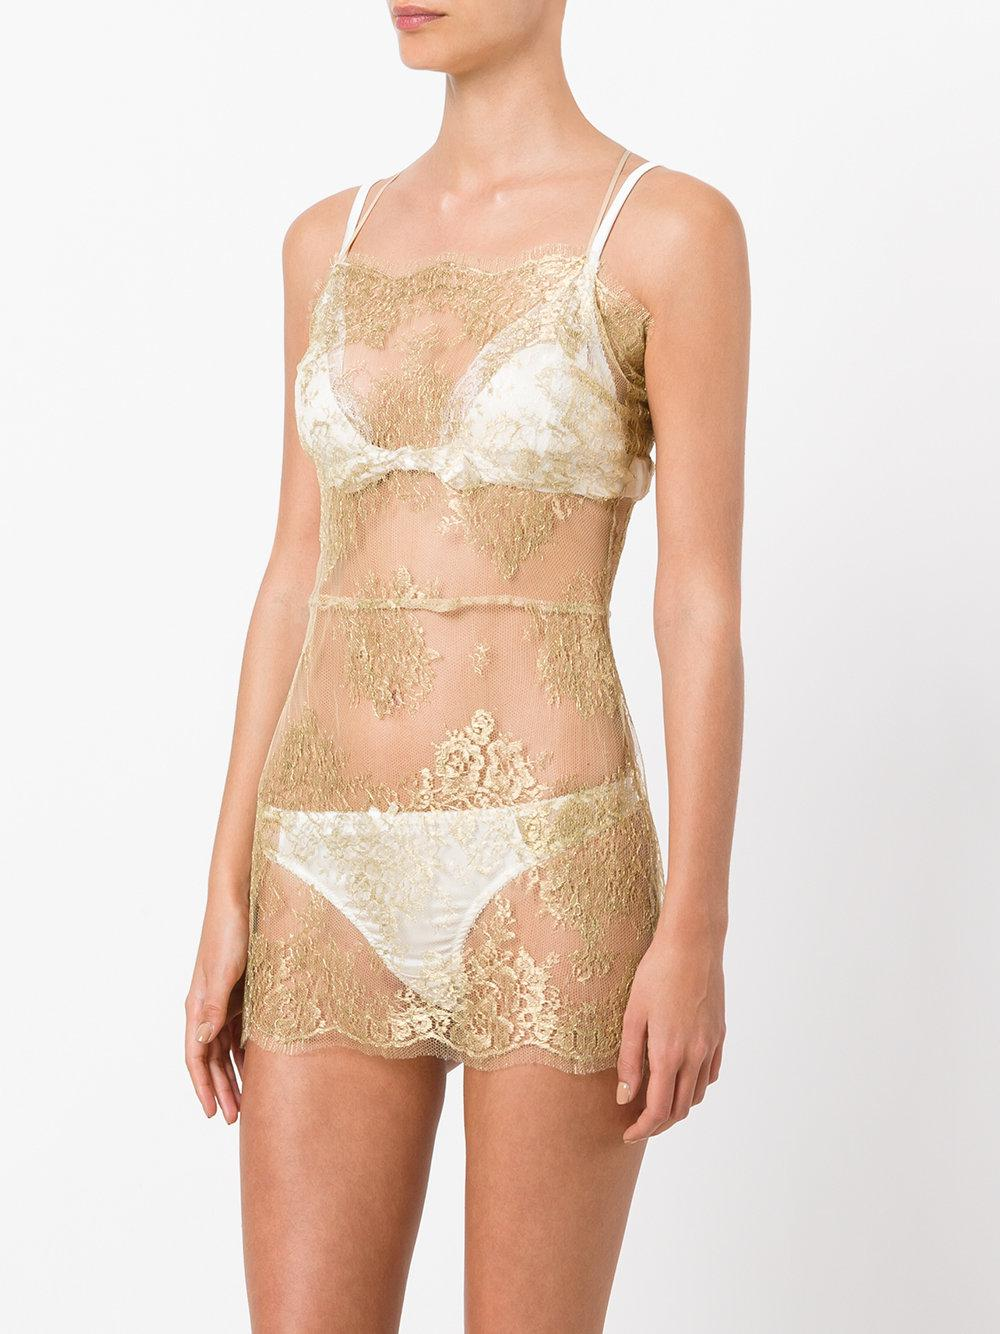 Clearance Store Cheap Price Harlow short slip - Metallic Gilda & Pearl Purchase Cheap Shopping Discounts Online T2xaAD2zpf